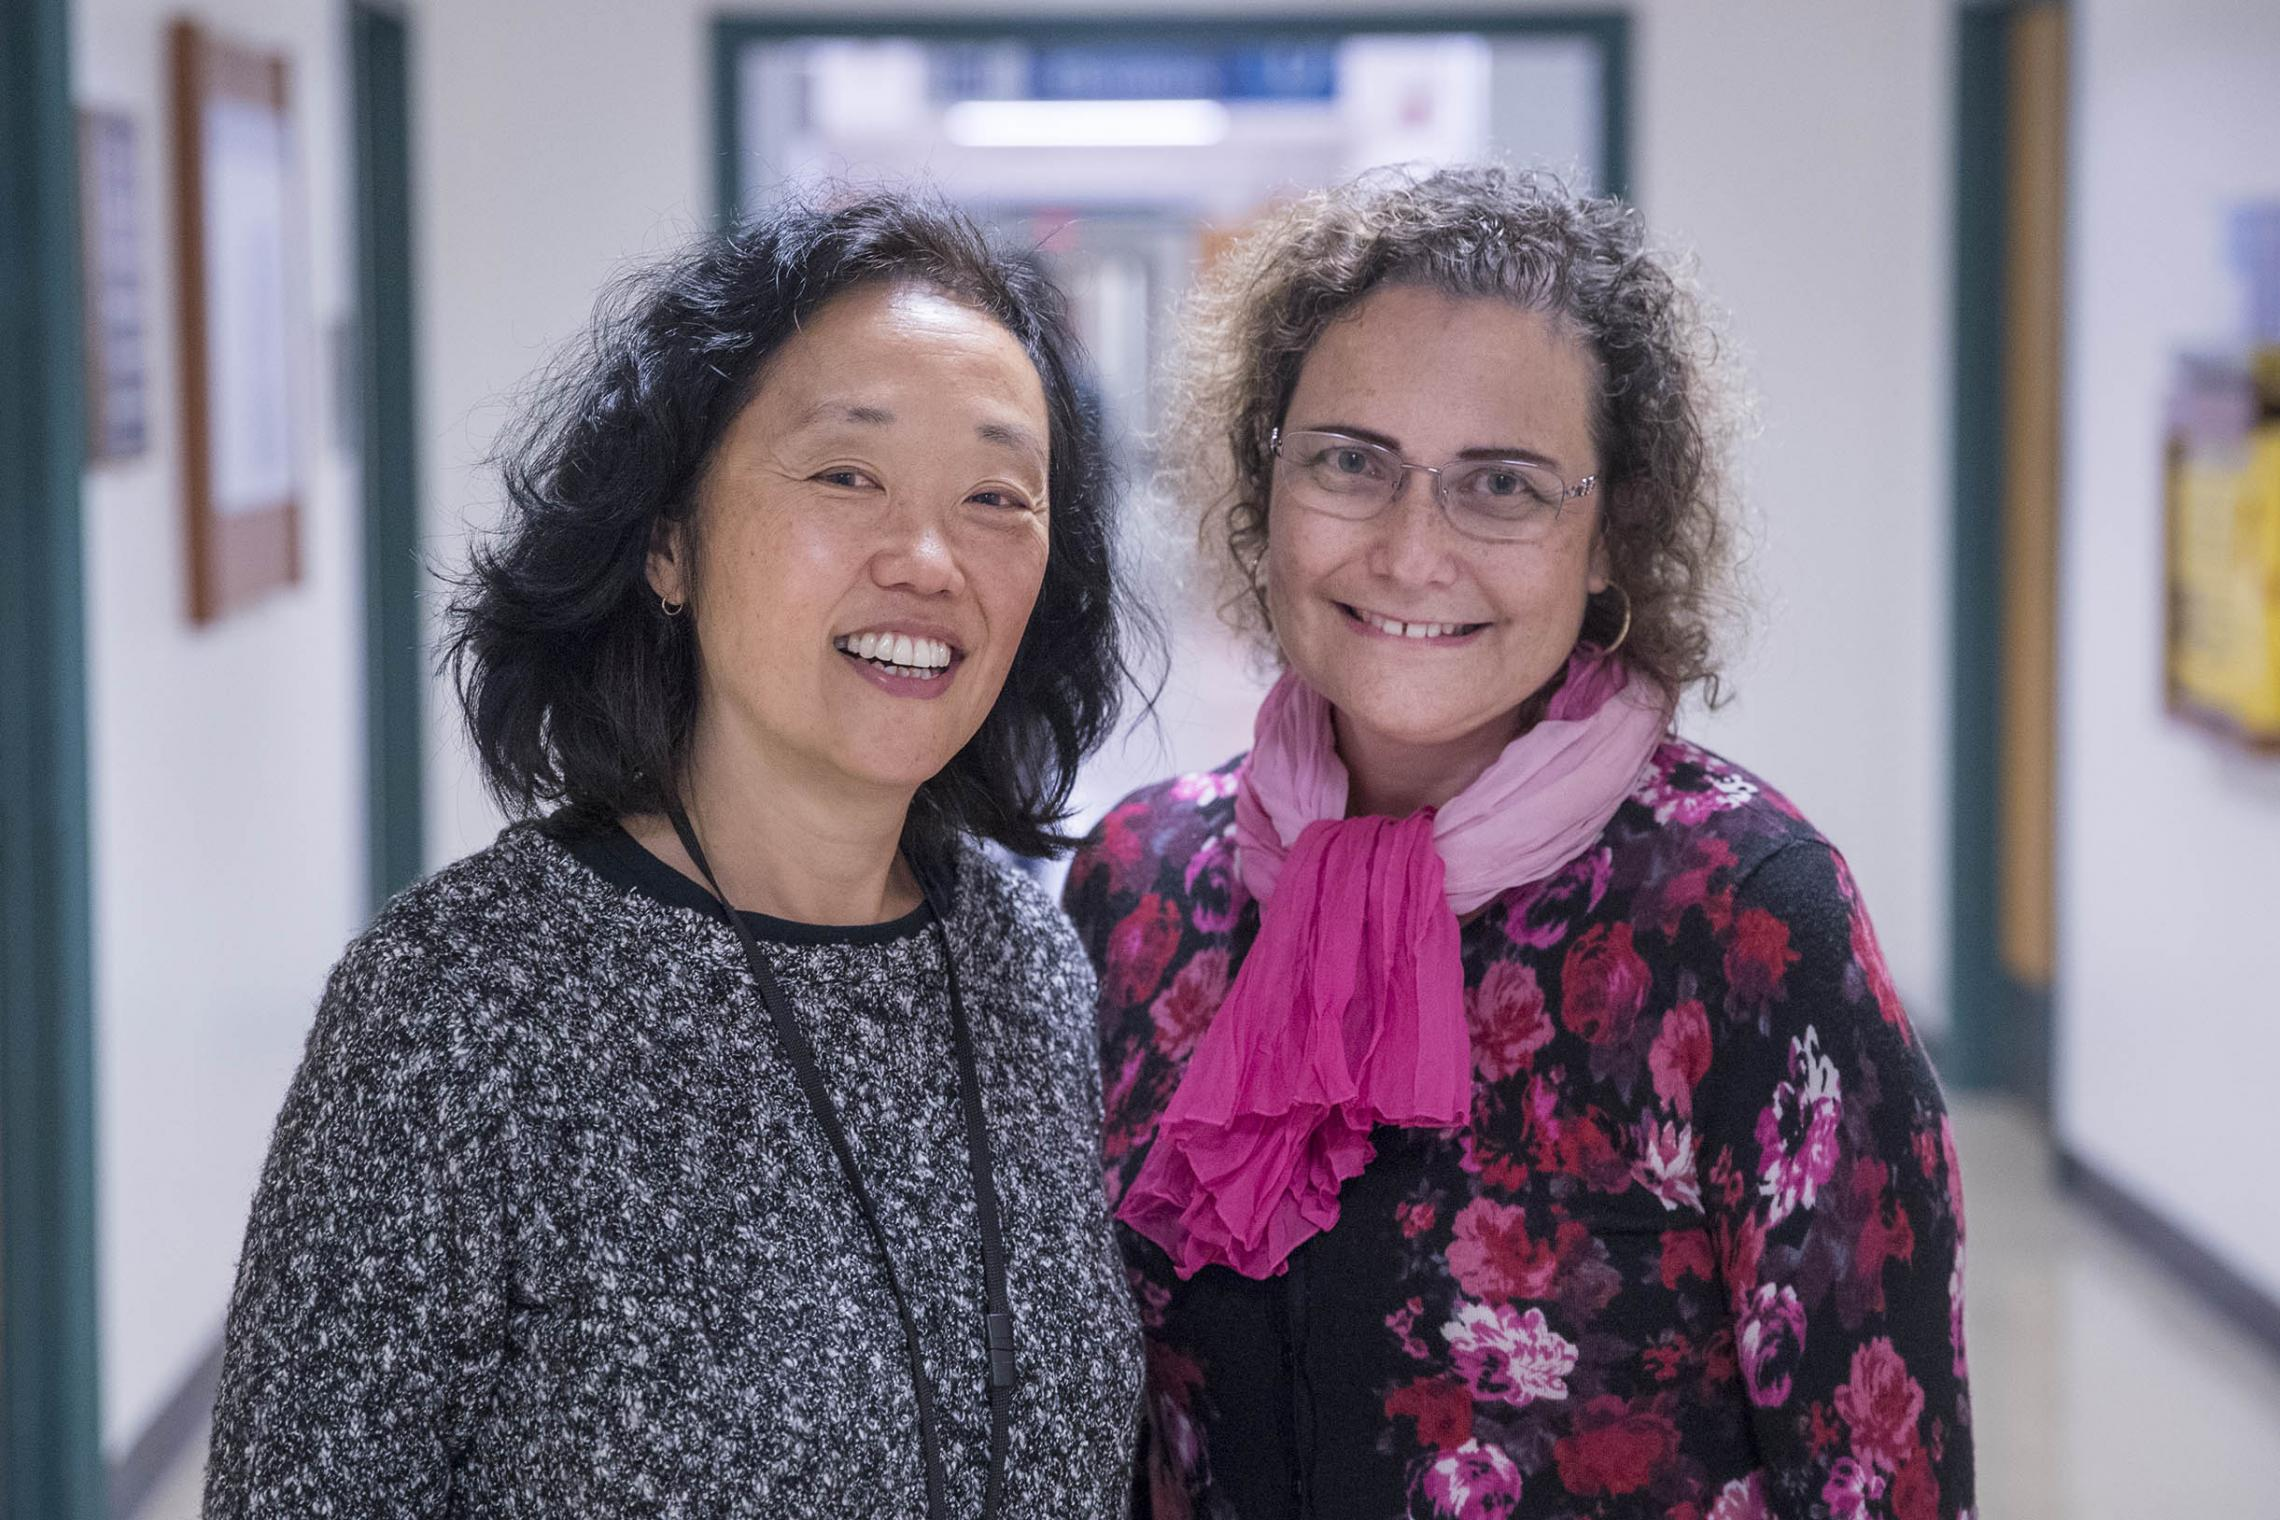 Dr. Rachel Moon, left, and Dr. Fern Hauck were part of a major study into breastfeeding's protective effect against SIDS.